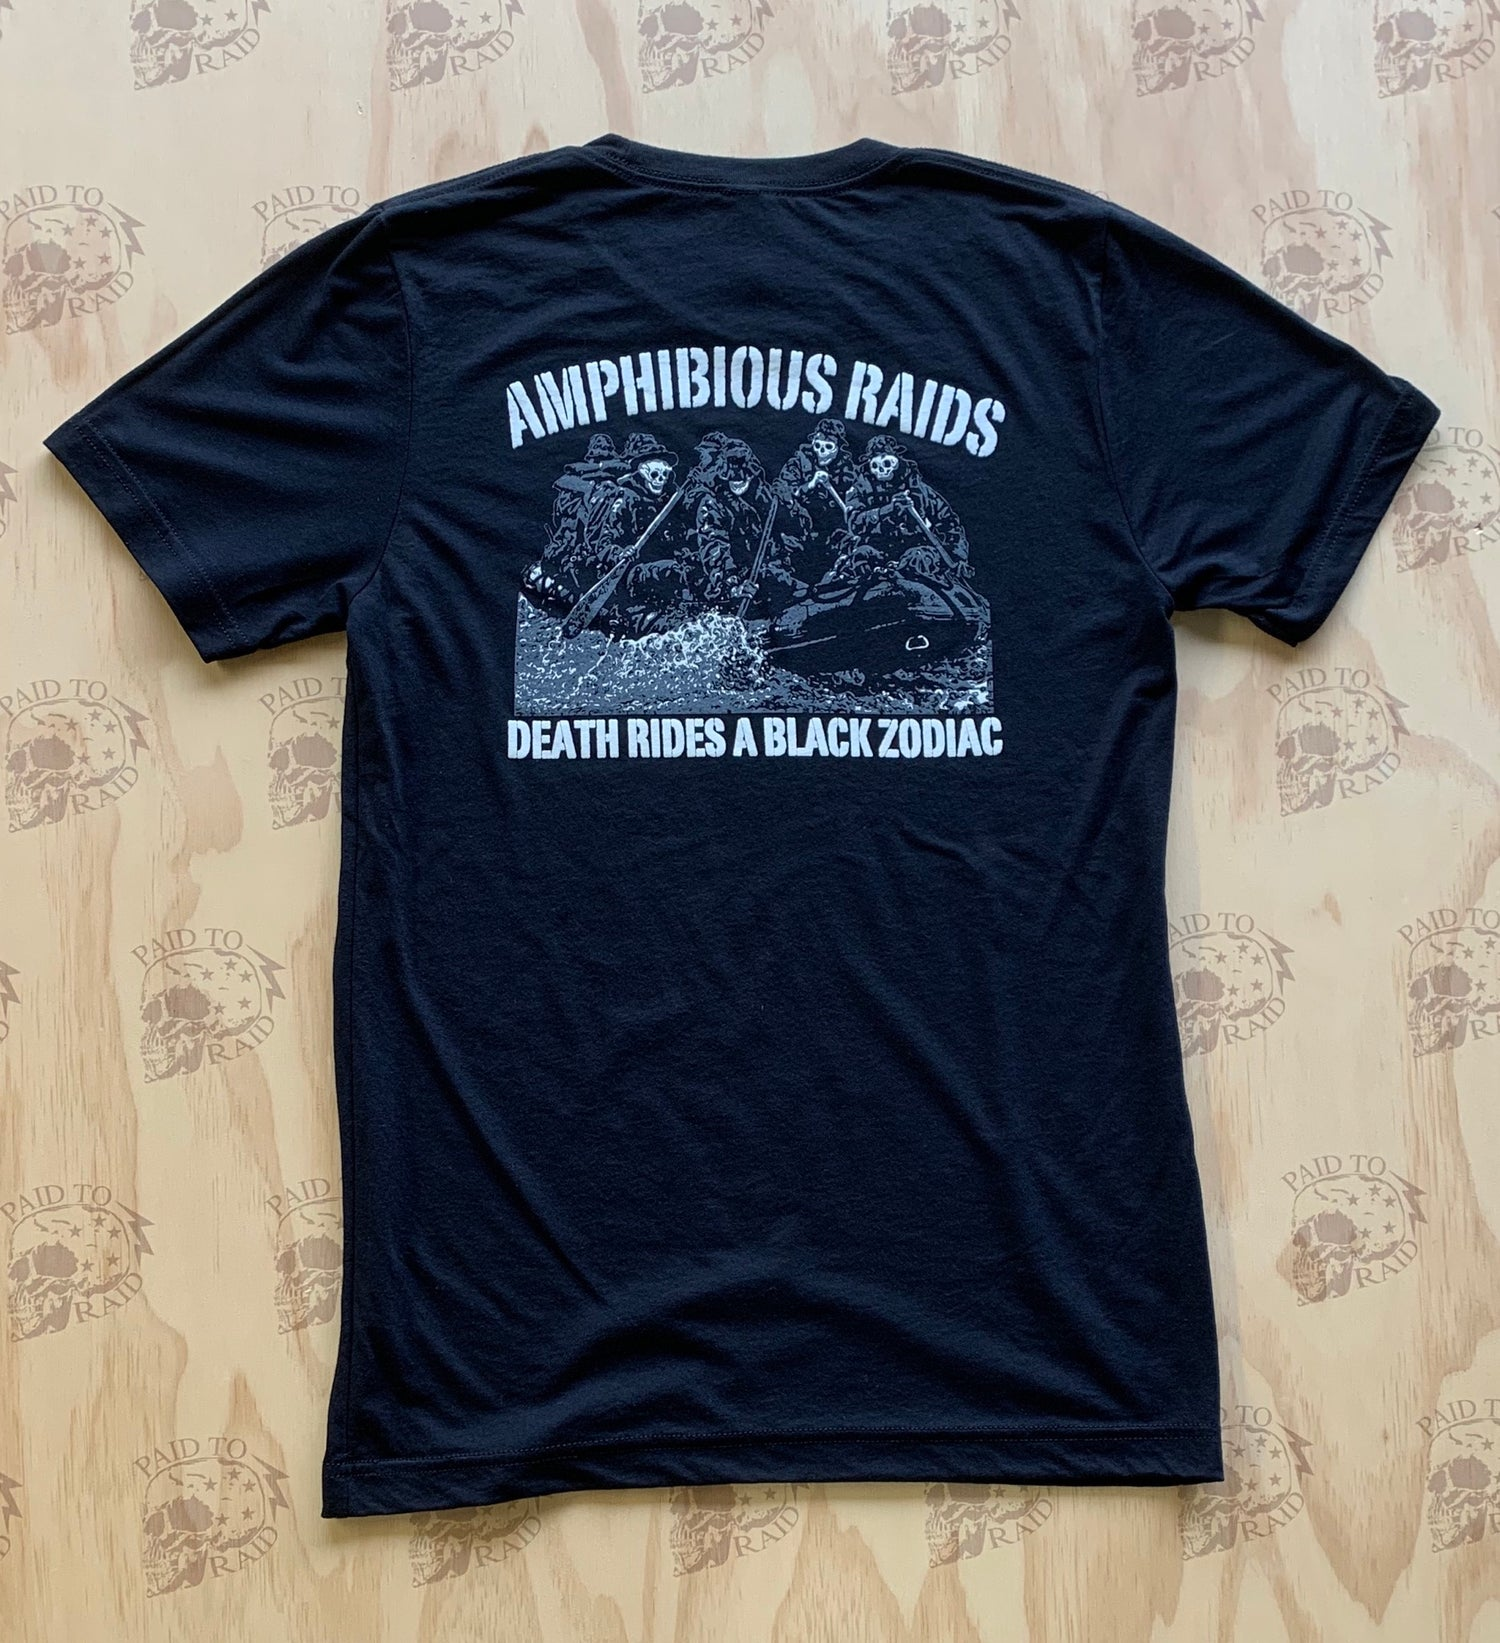 Image of Monkey's Fist Amphib Raids Tee